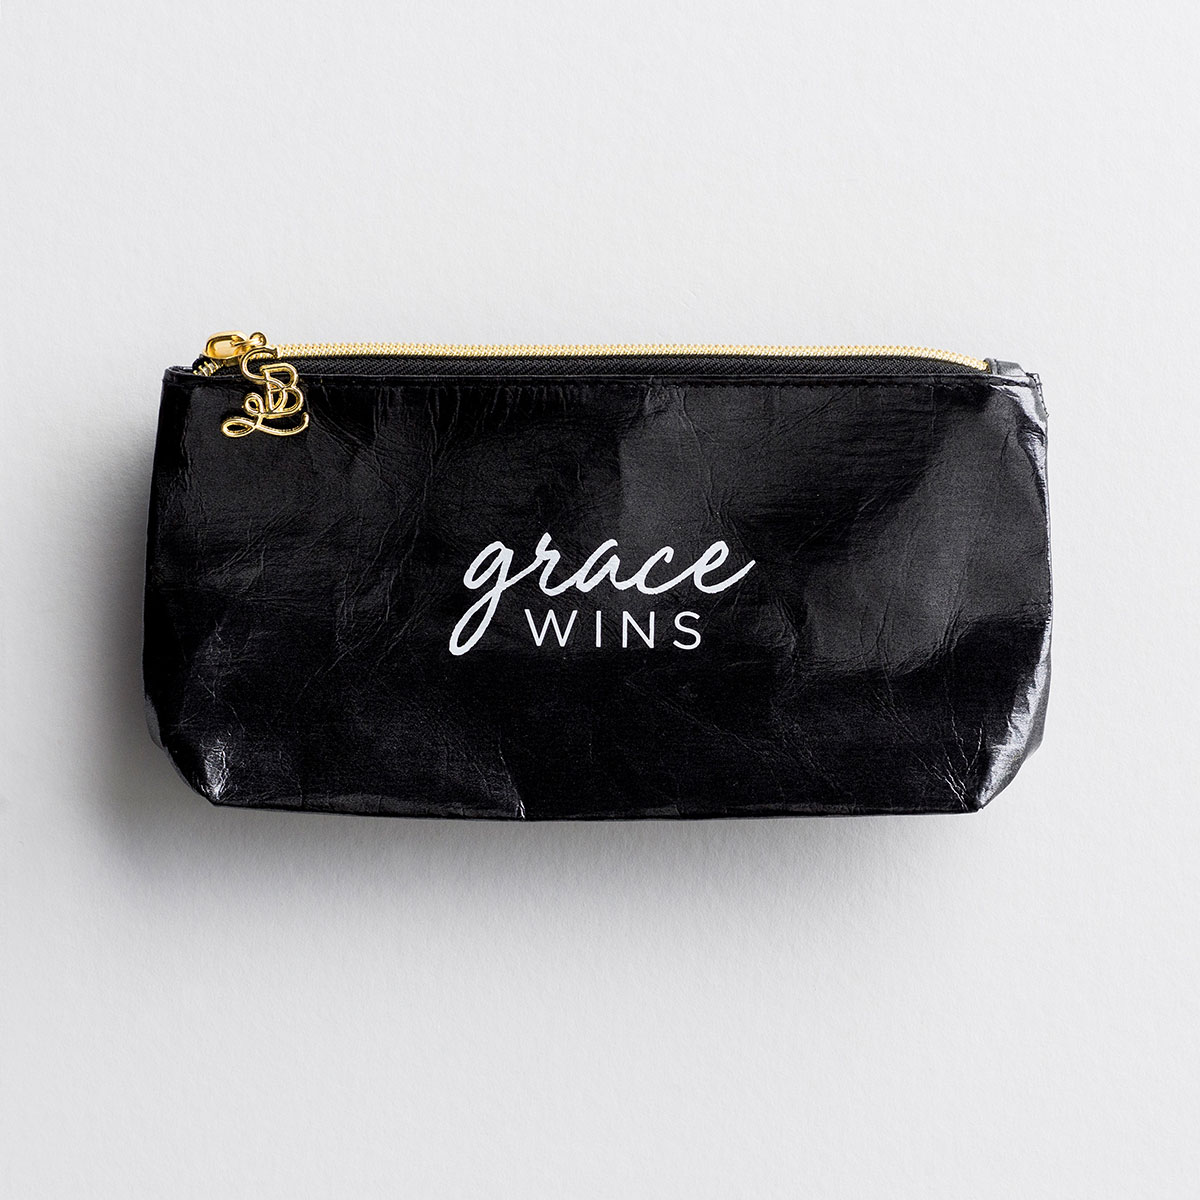 Grace Wins - Pouch/Stadium Bag Insert - Black